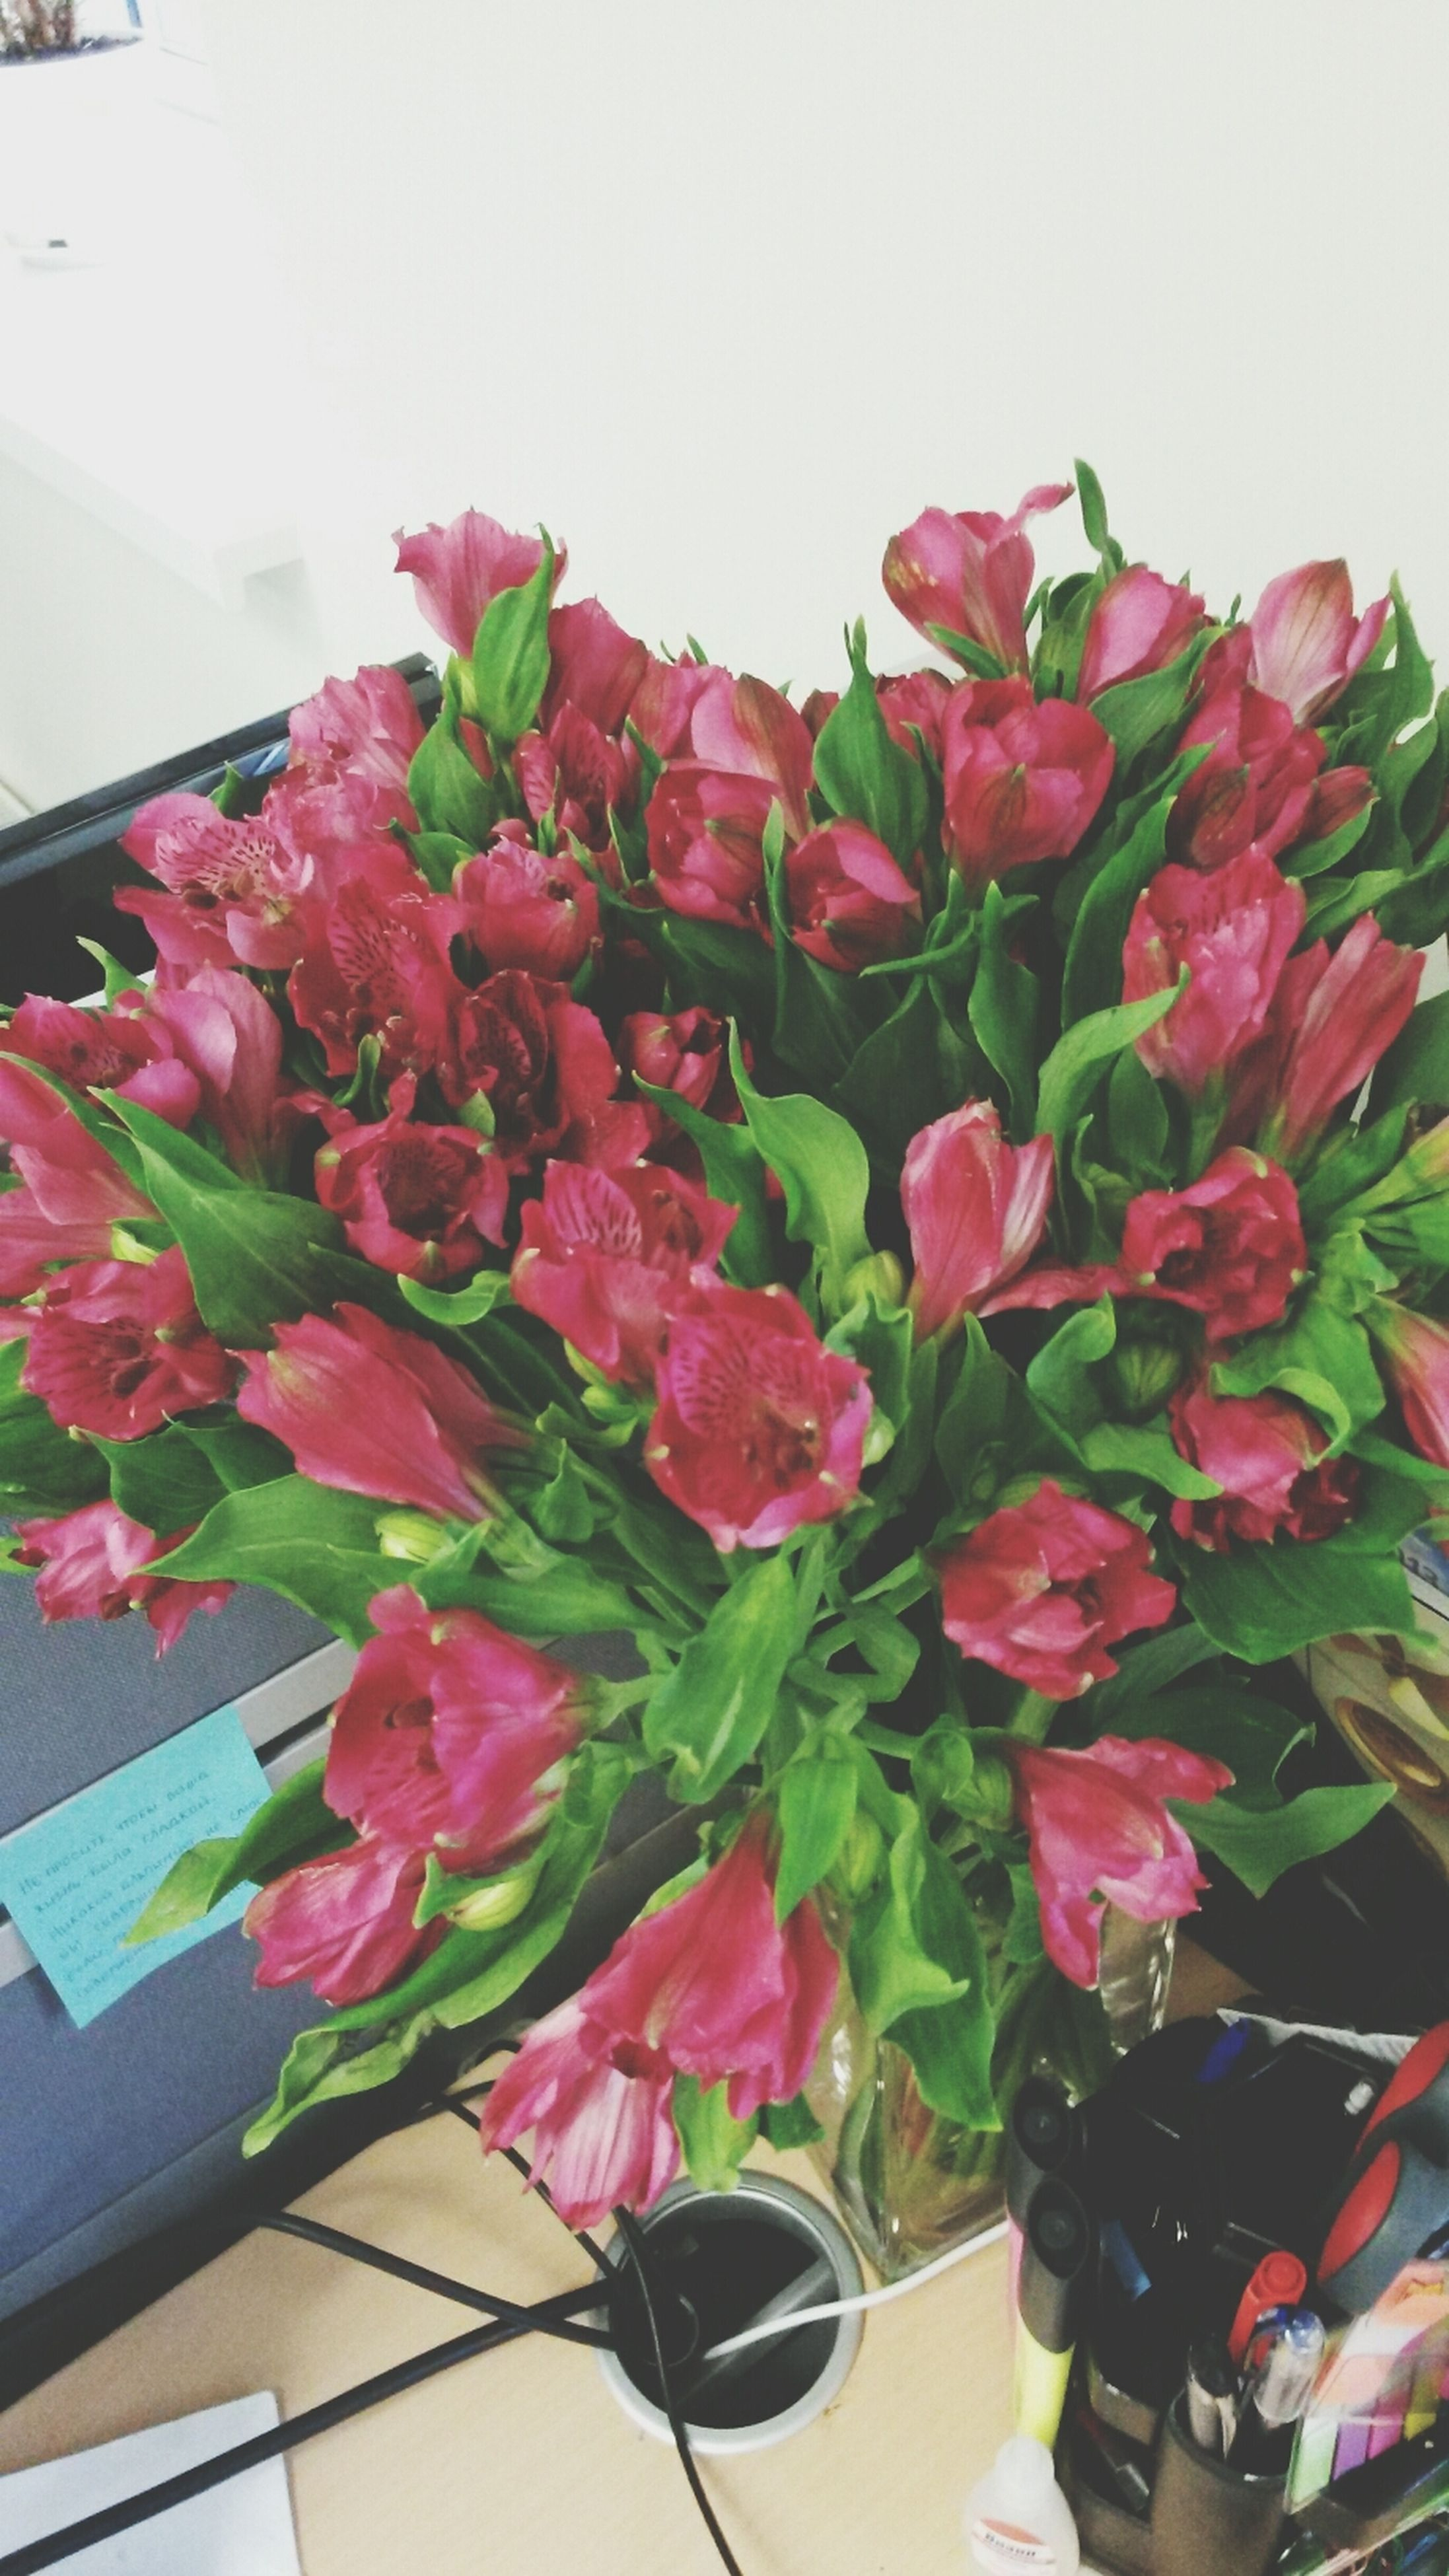 flower, fragility, petal, indoors, freshness, multi colored, pink color, bouquet, decoration, flower head, beauty in nature, copy space, variation, vase, potted plant, nature, wall - building feature, growth, clear sky, bunch of flowers